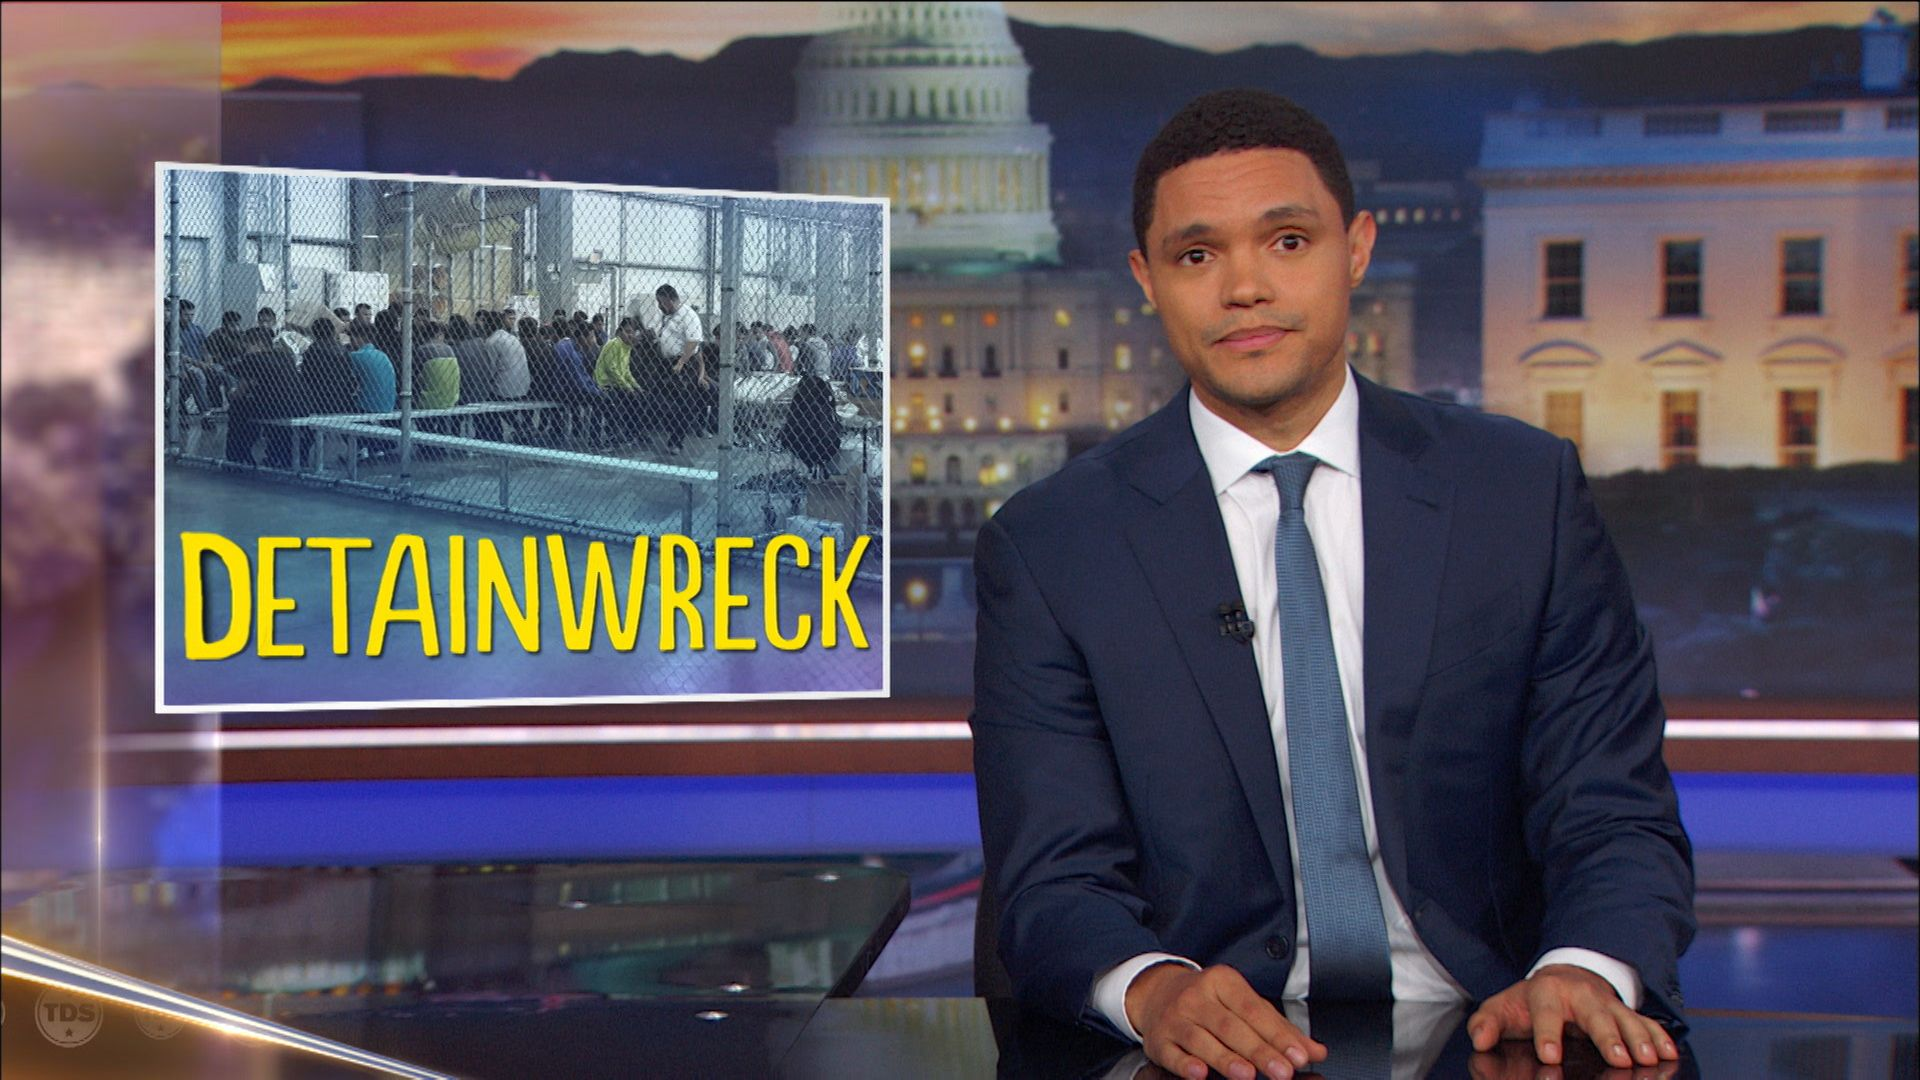 Trump Backs Down on His Family Separation Policy - The Daily Show with Trevor Noah (Video Clip)   Comedy Central